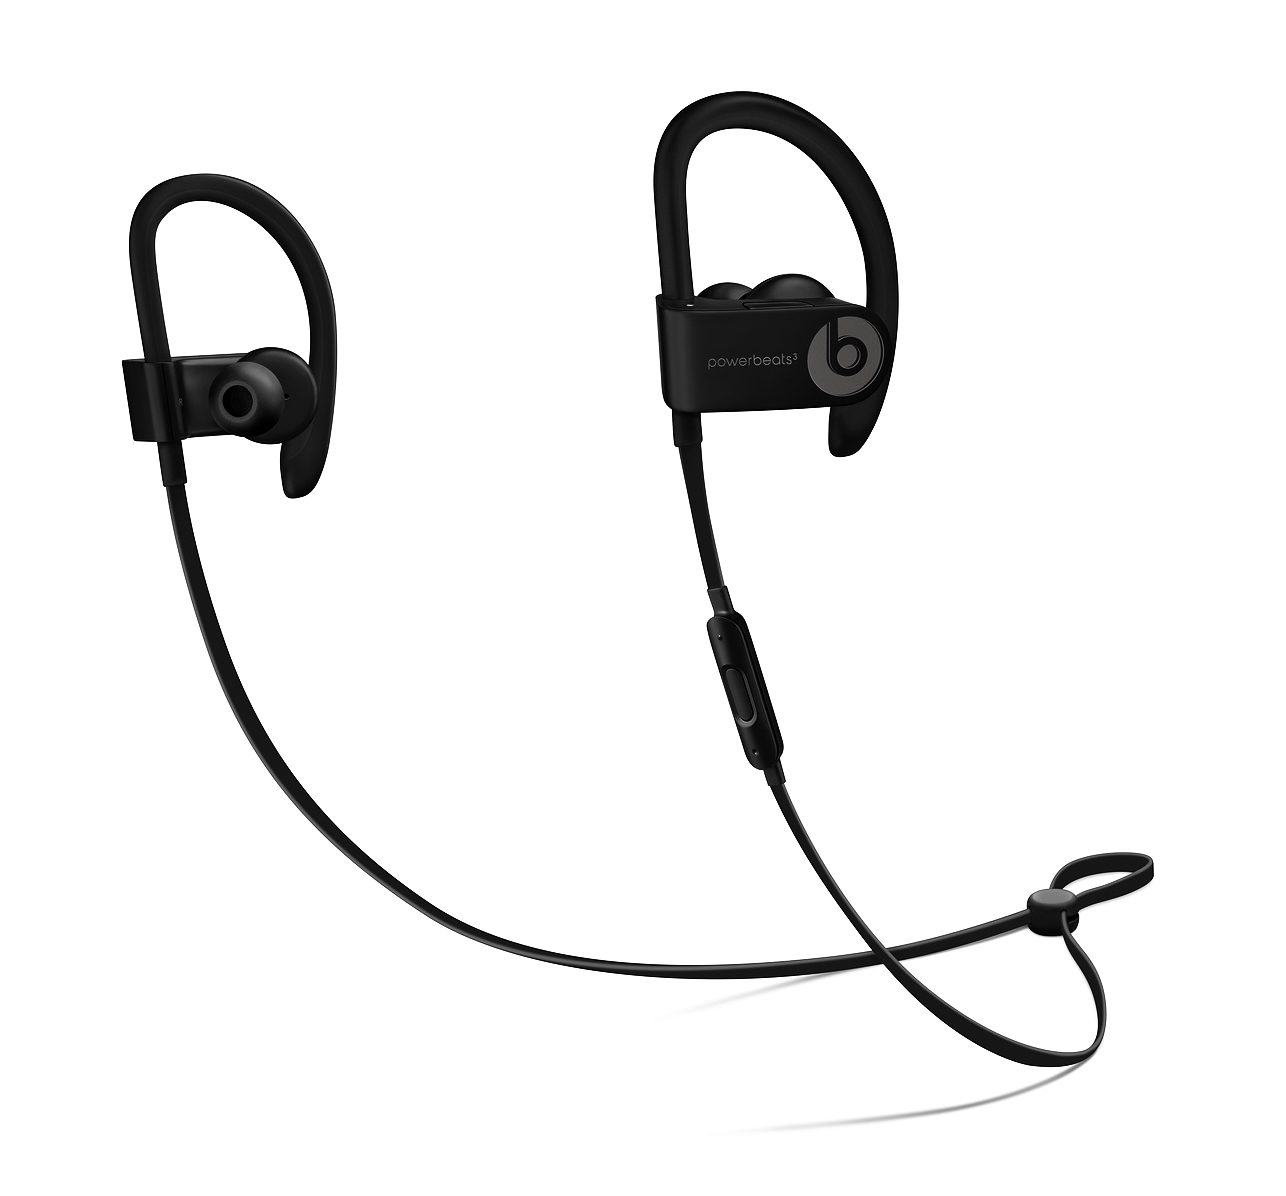 HEADPHONES - The Beats Powerbeats 3 Wireless Headphones everytime. These are light, sporty + have an incredible sound. Take them with you everywhere. Buy them here.